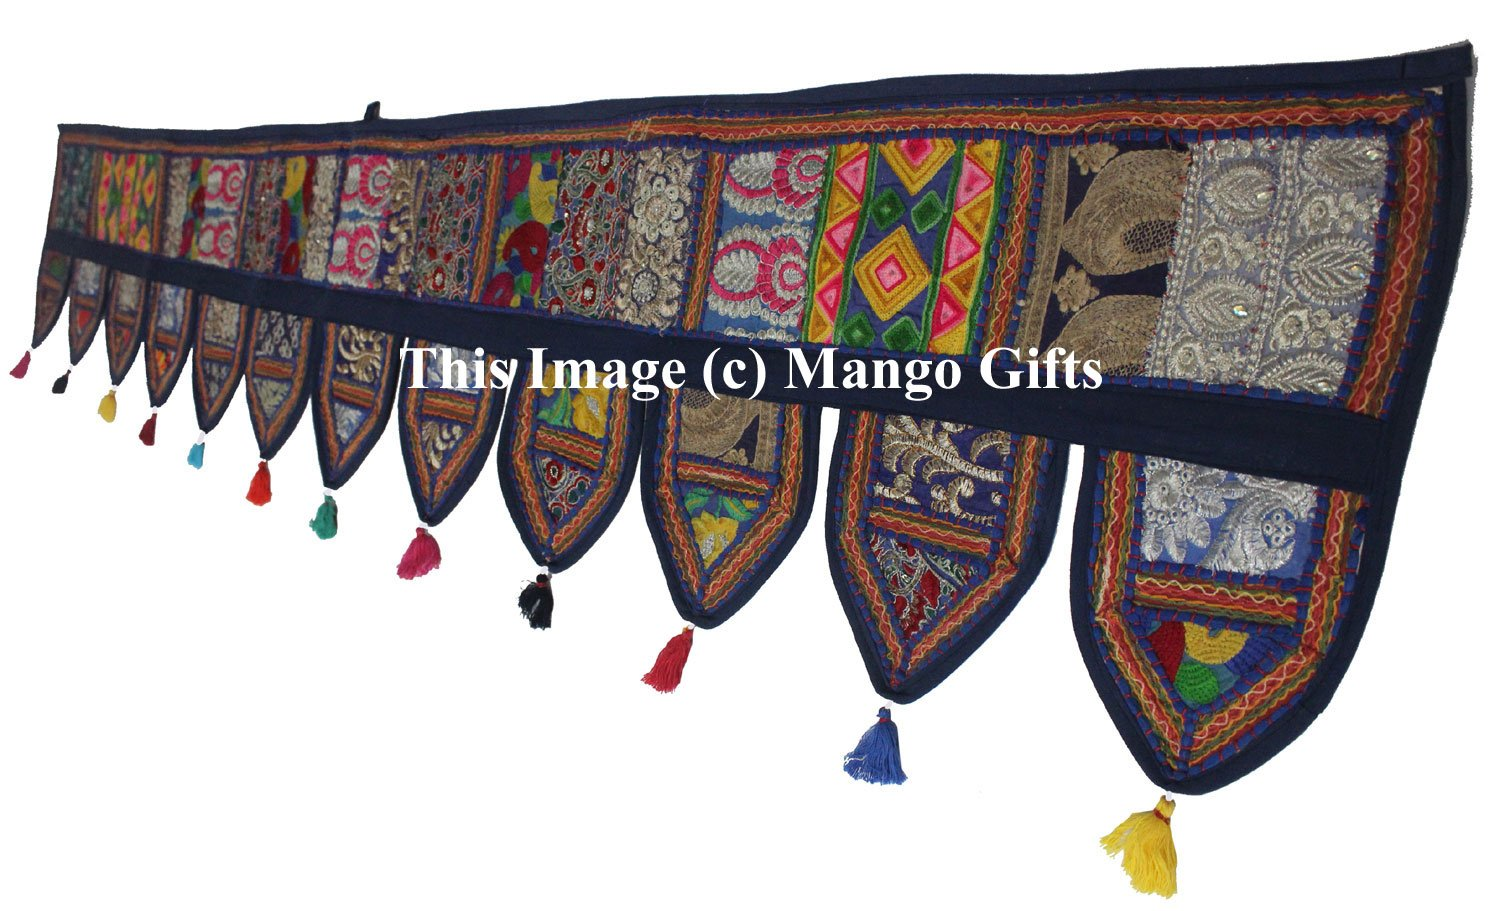 Christmas Decorative- ''80'' Cotton Ethnic Wall Hanging Home Decor Vintage Patchwork Door Topper Valances Window Indian Valances Hand Embroidered Patchwork Toran Boho Bohemian Decor Living Room Decor GANESHAM